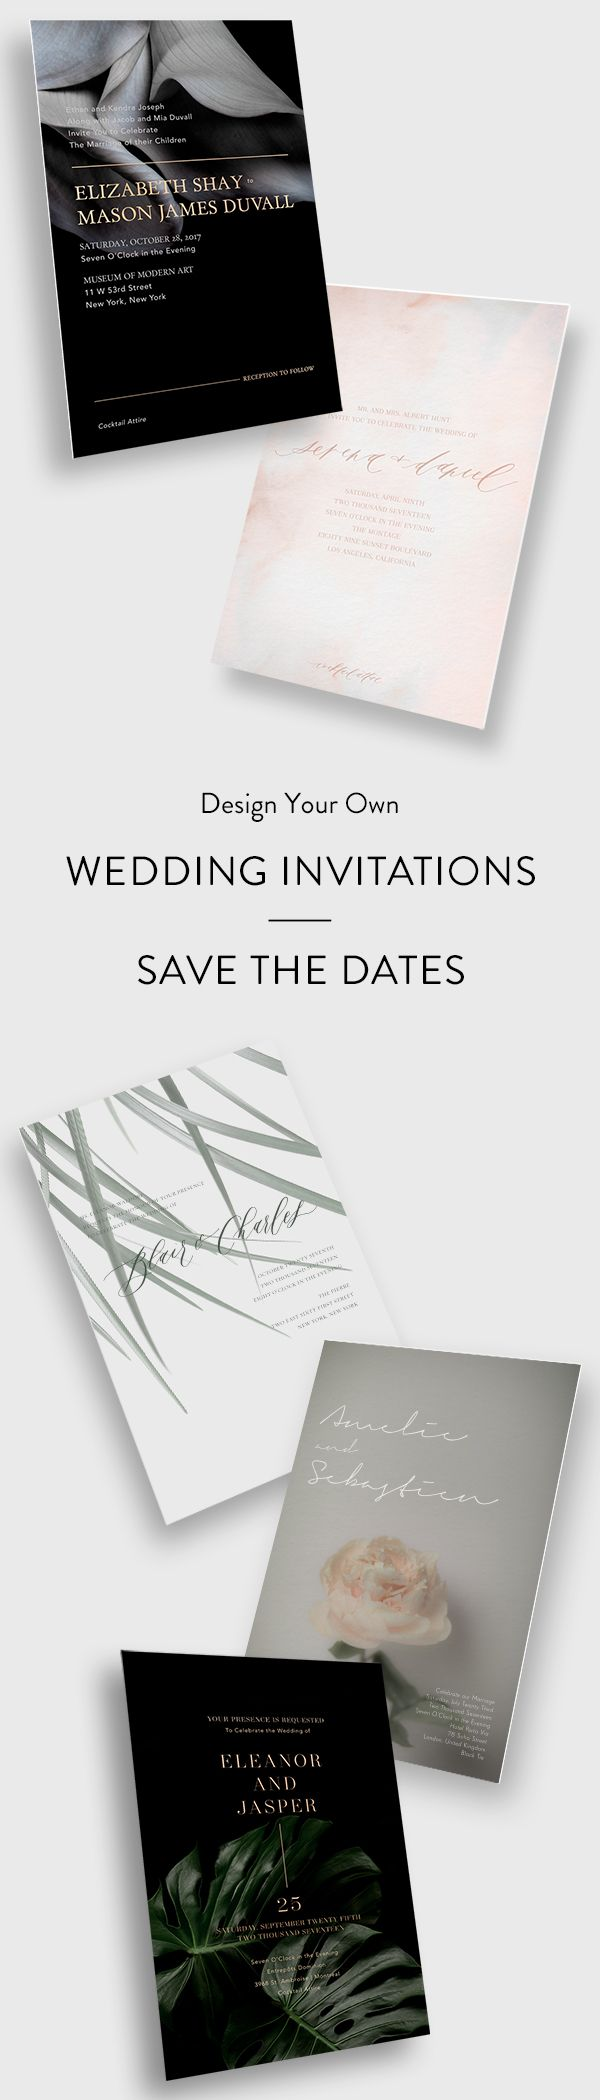 Print Your Own Save Dates